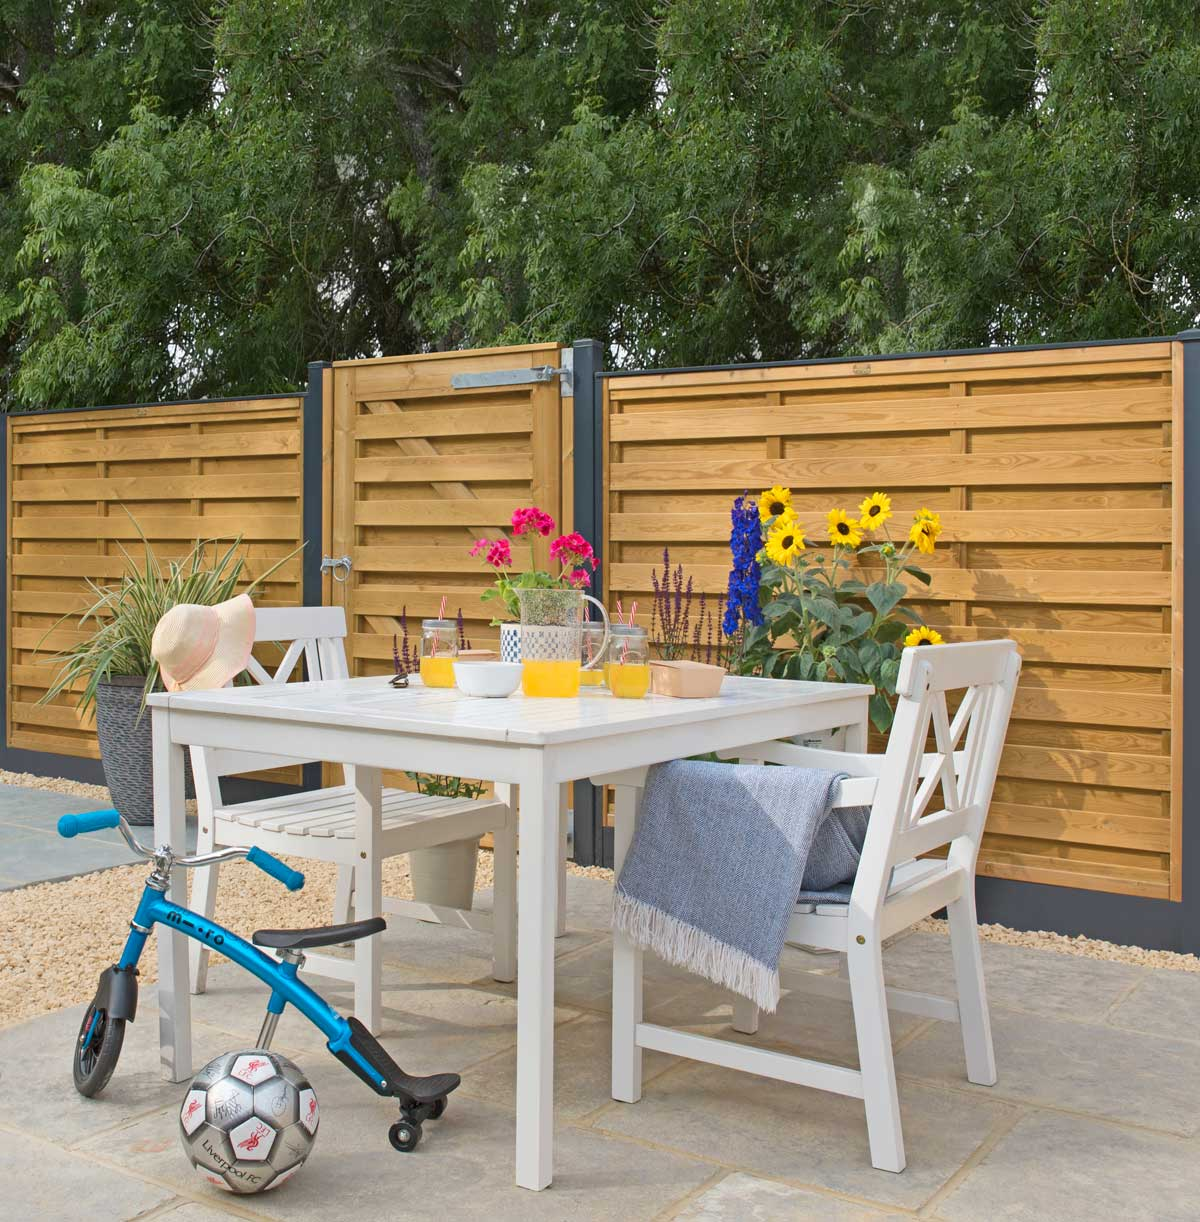 DuraPost galvanised steel fencing post system